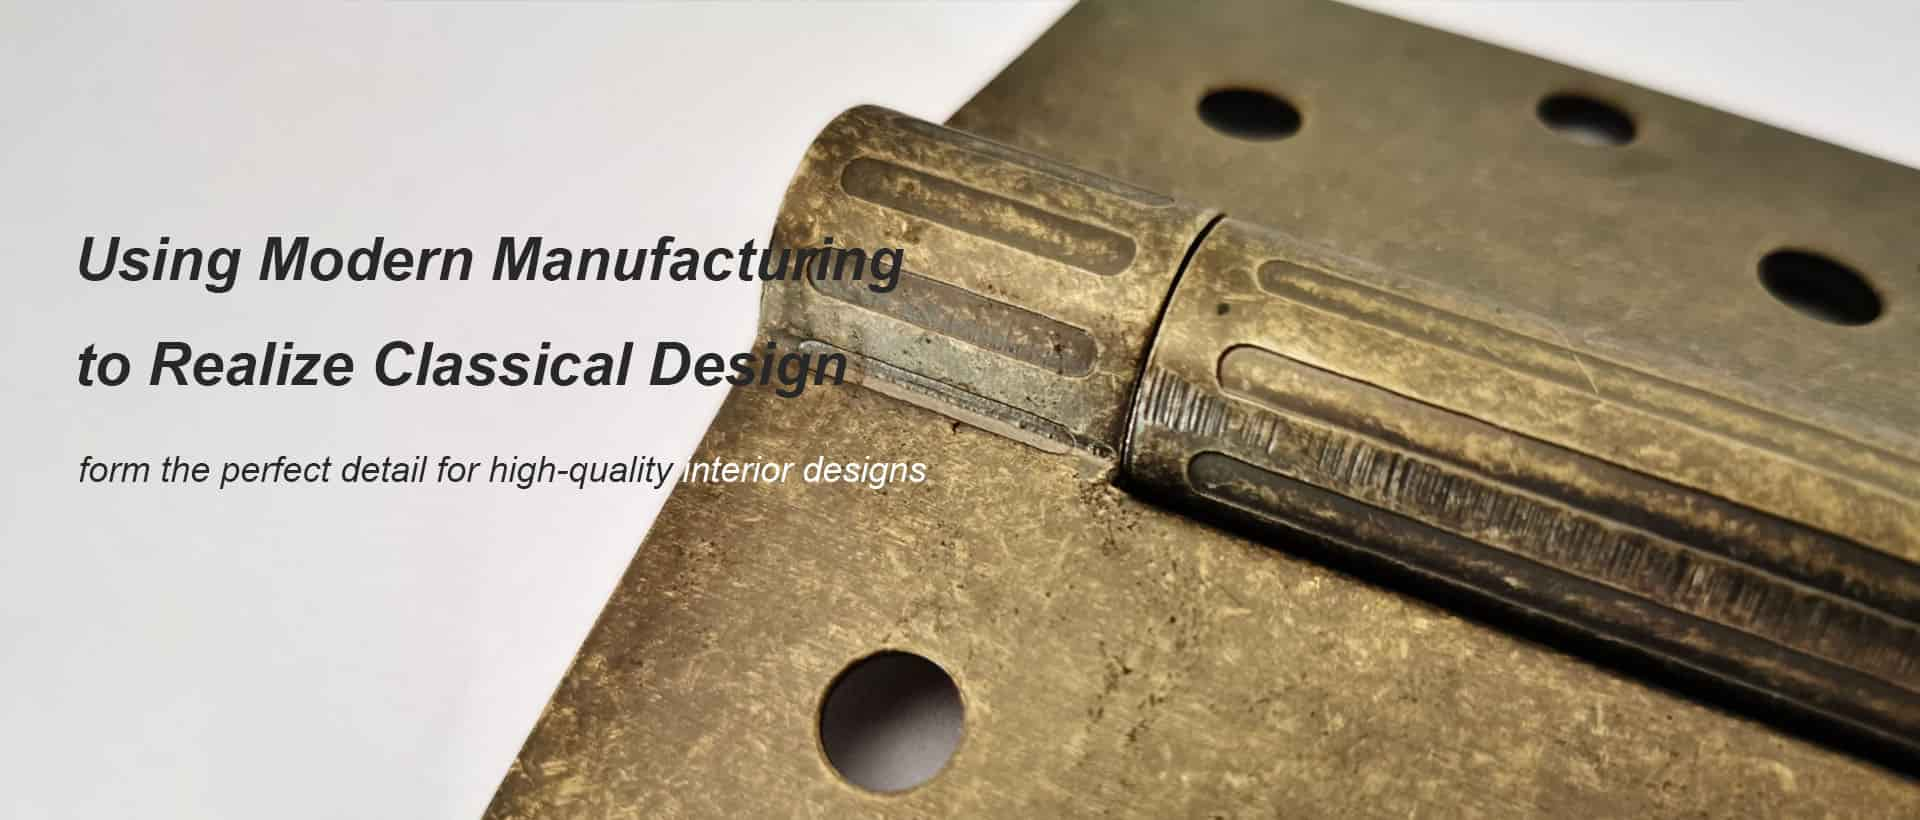 Using Modern Manufacturing to Realize Classical Design